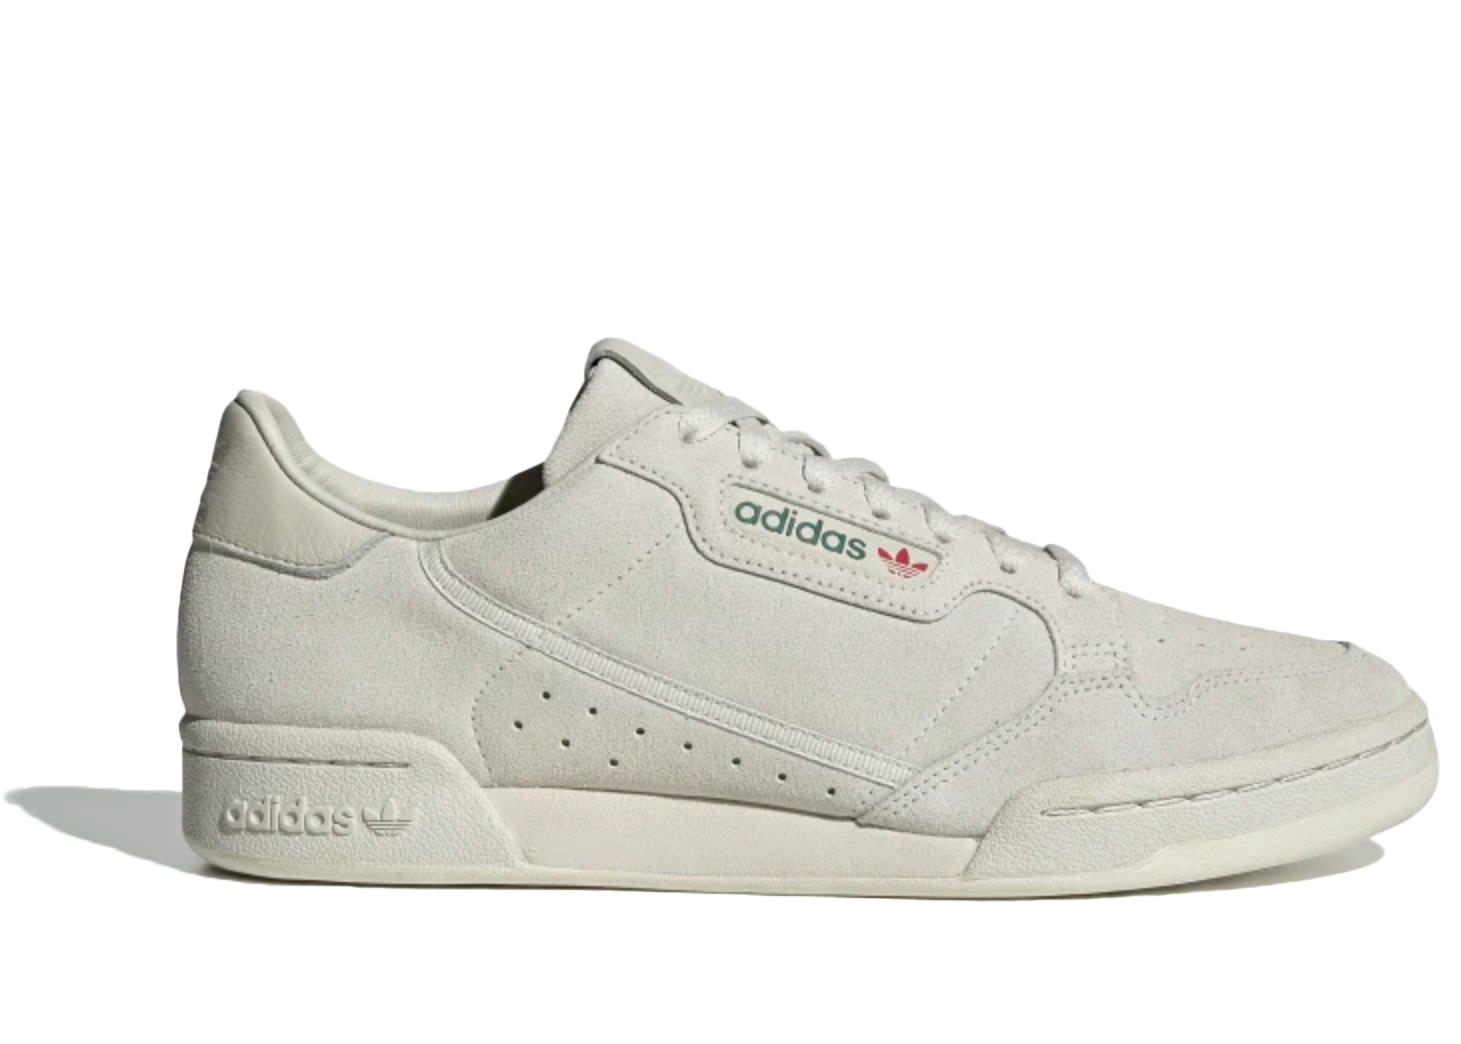 adidas Continental 80 Raw White - EE5363